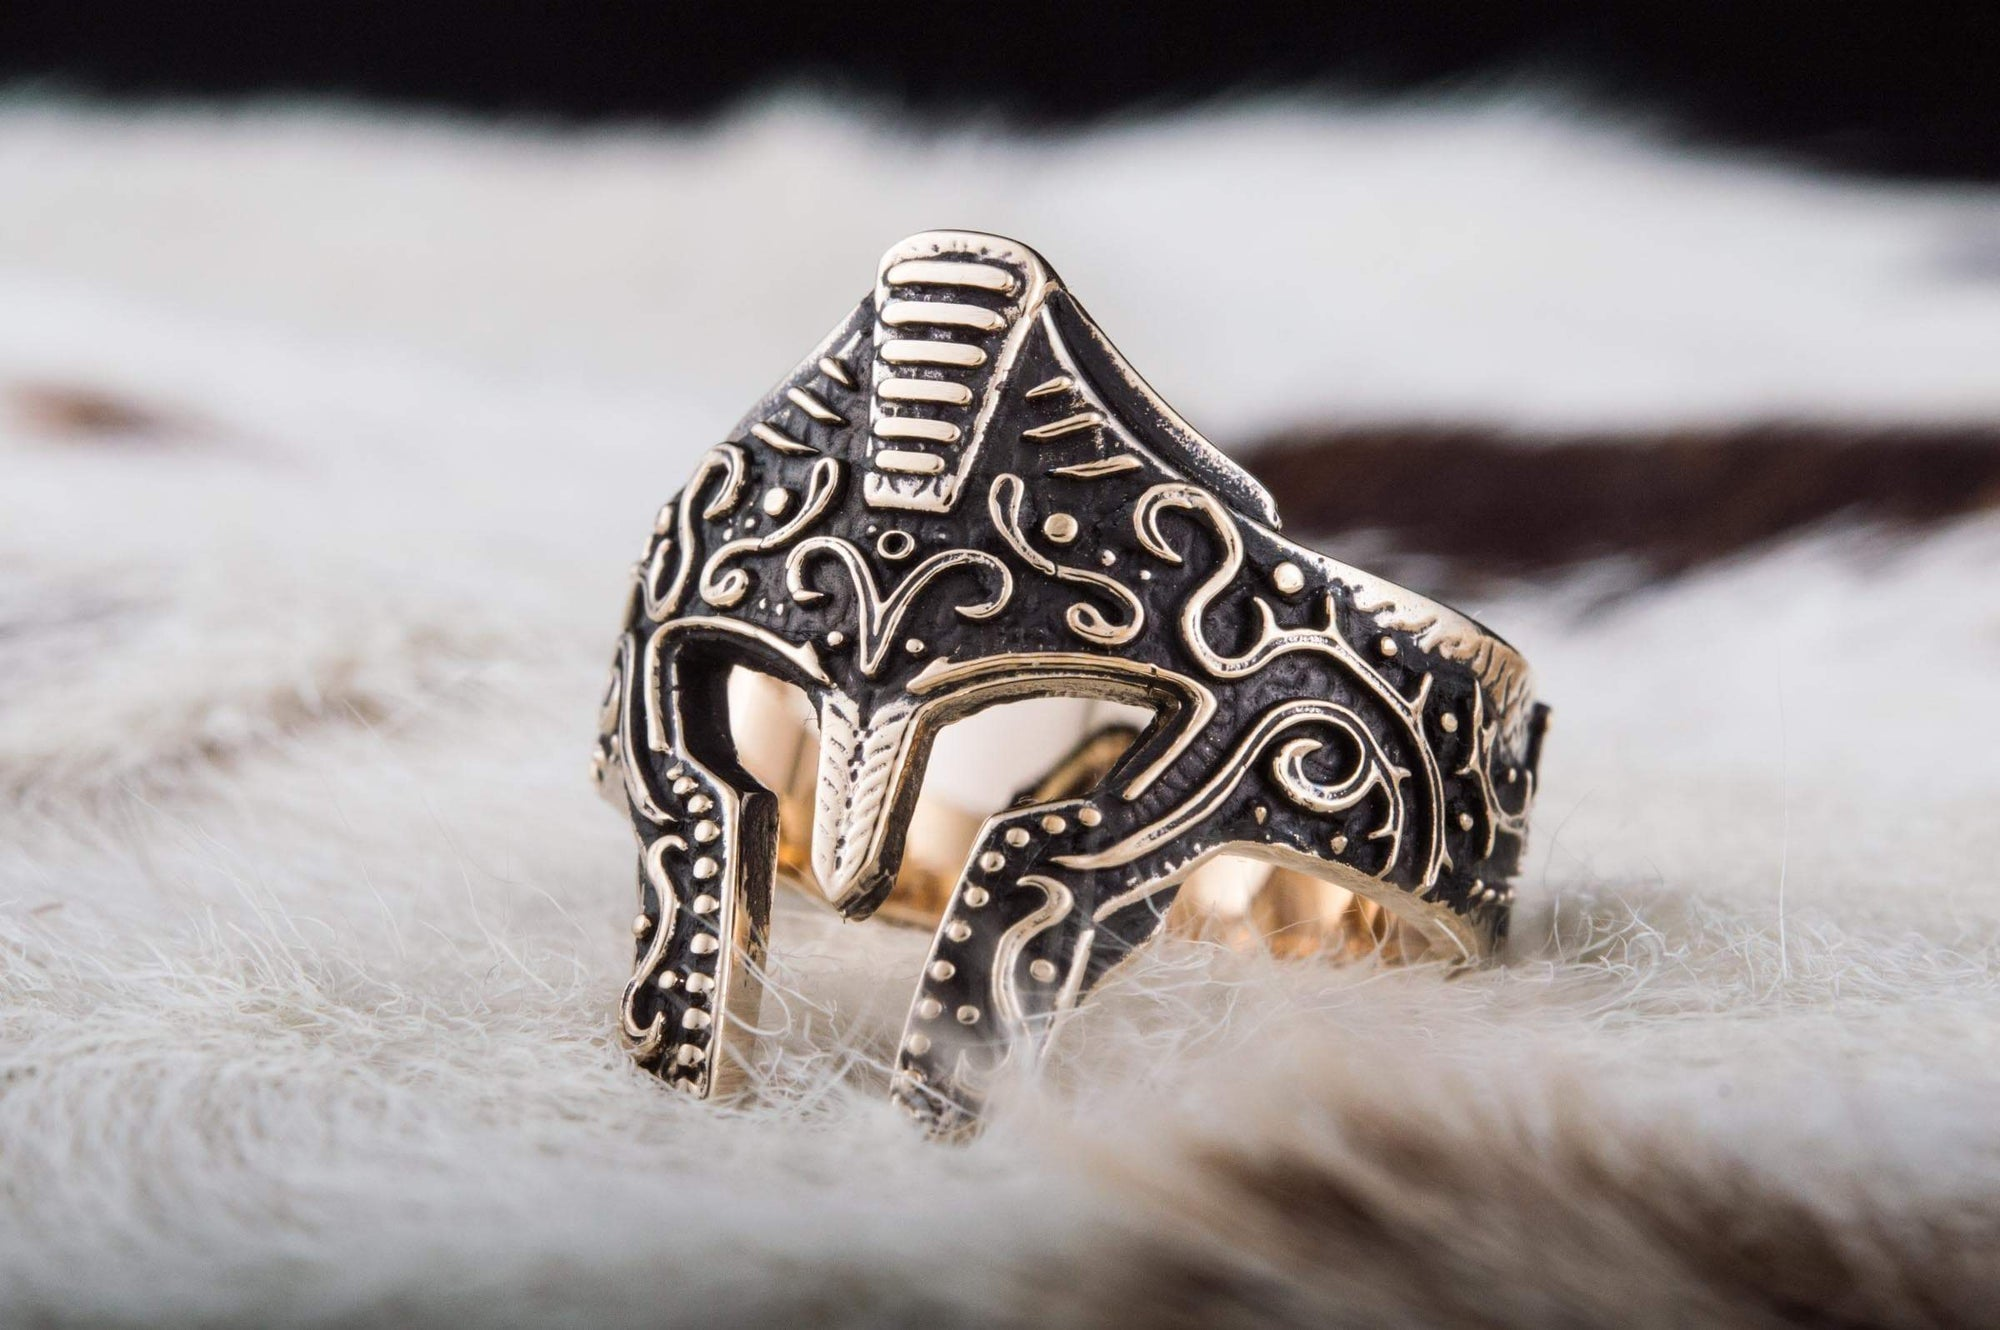 Rings Ancient Greece Spartan Helmet Handmade Ring with Ornaments Ancient Treasures Ancientreasures Viking Odin Thor Mjolnir Celtic Ancient Egypt Norse Norse Mythology